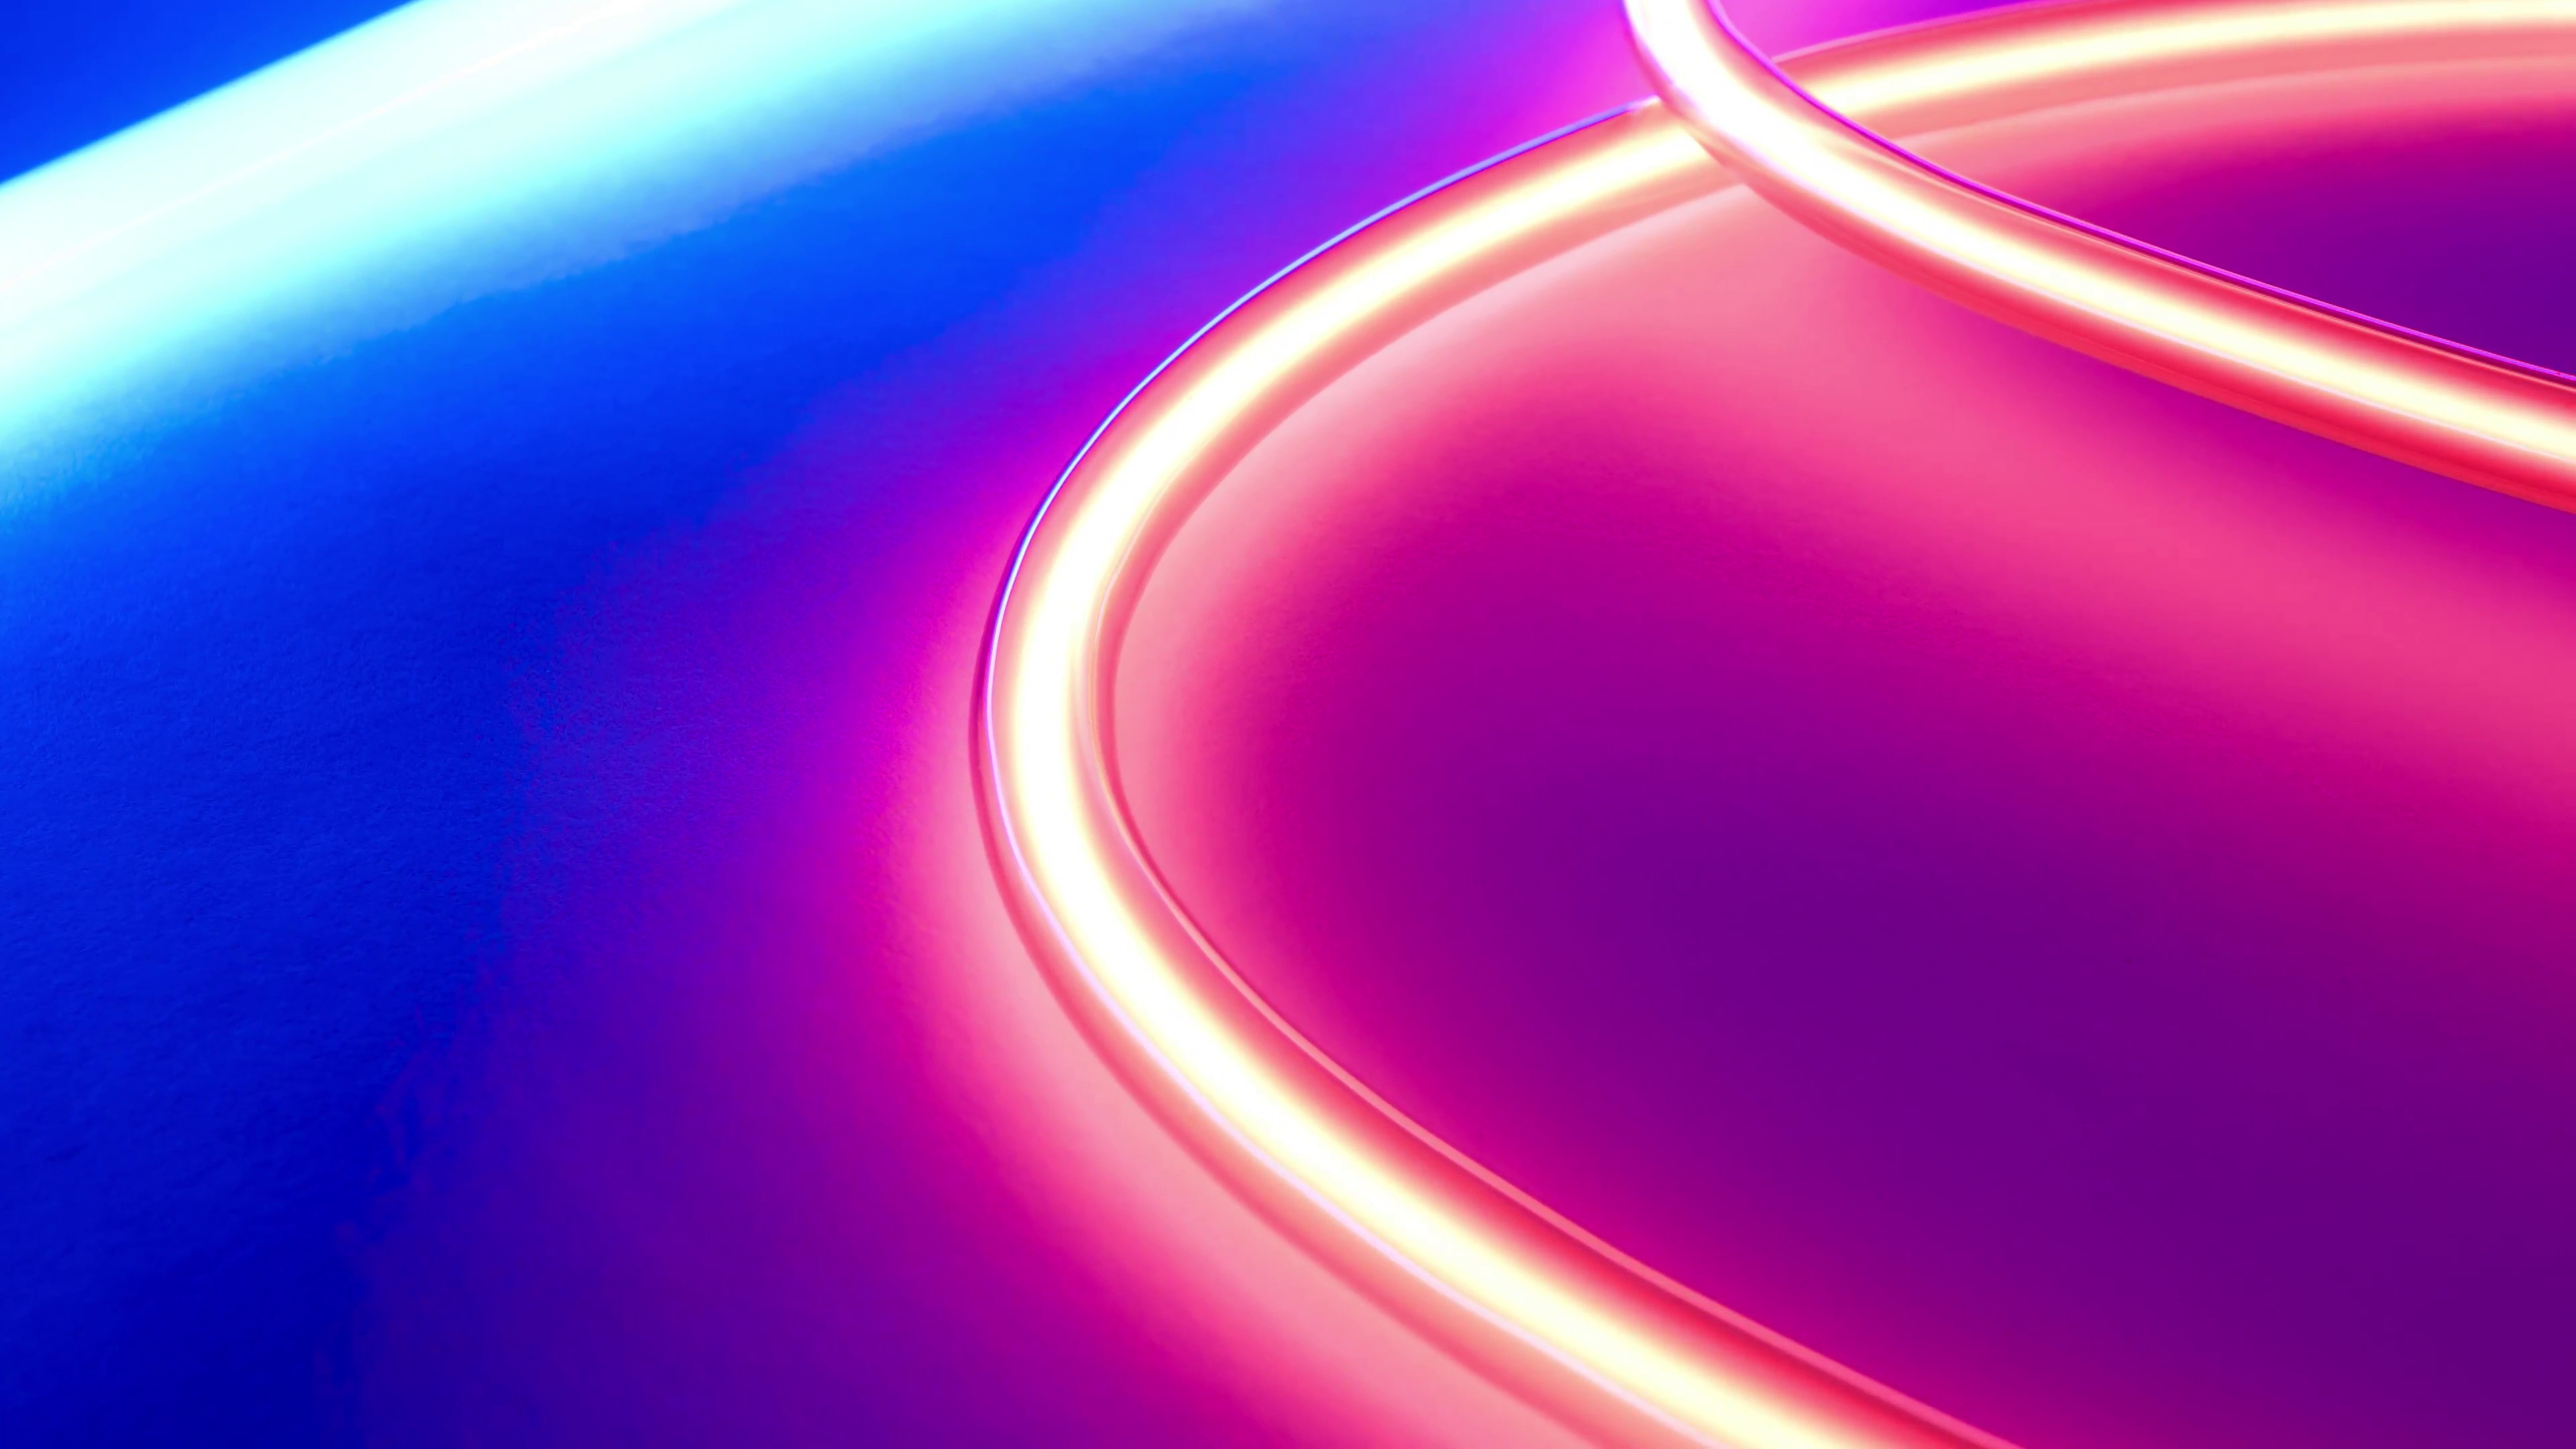 Subscription Library Abstract neon lights background 4k